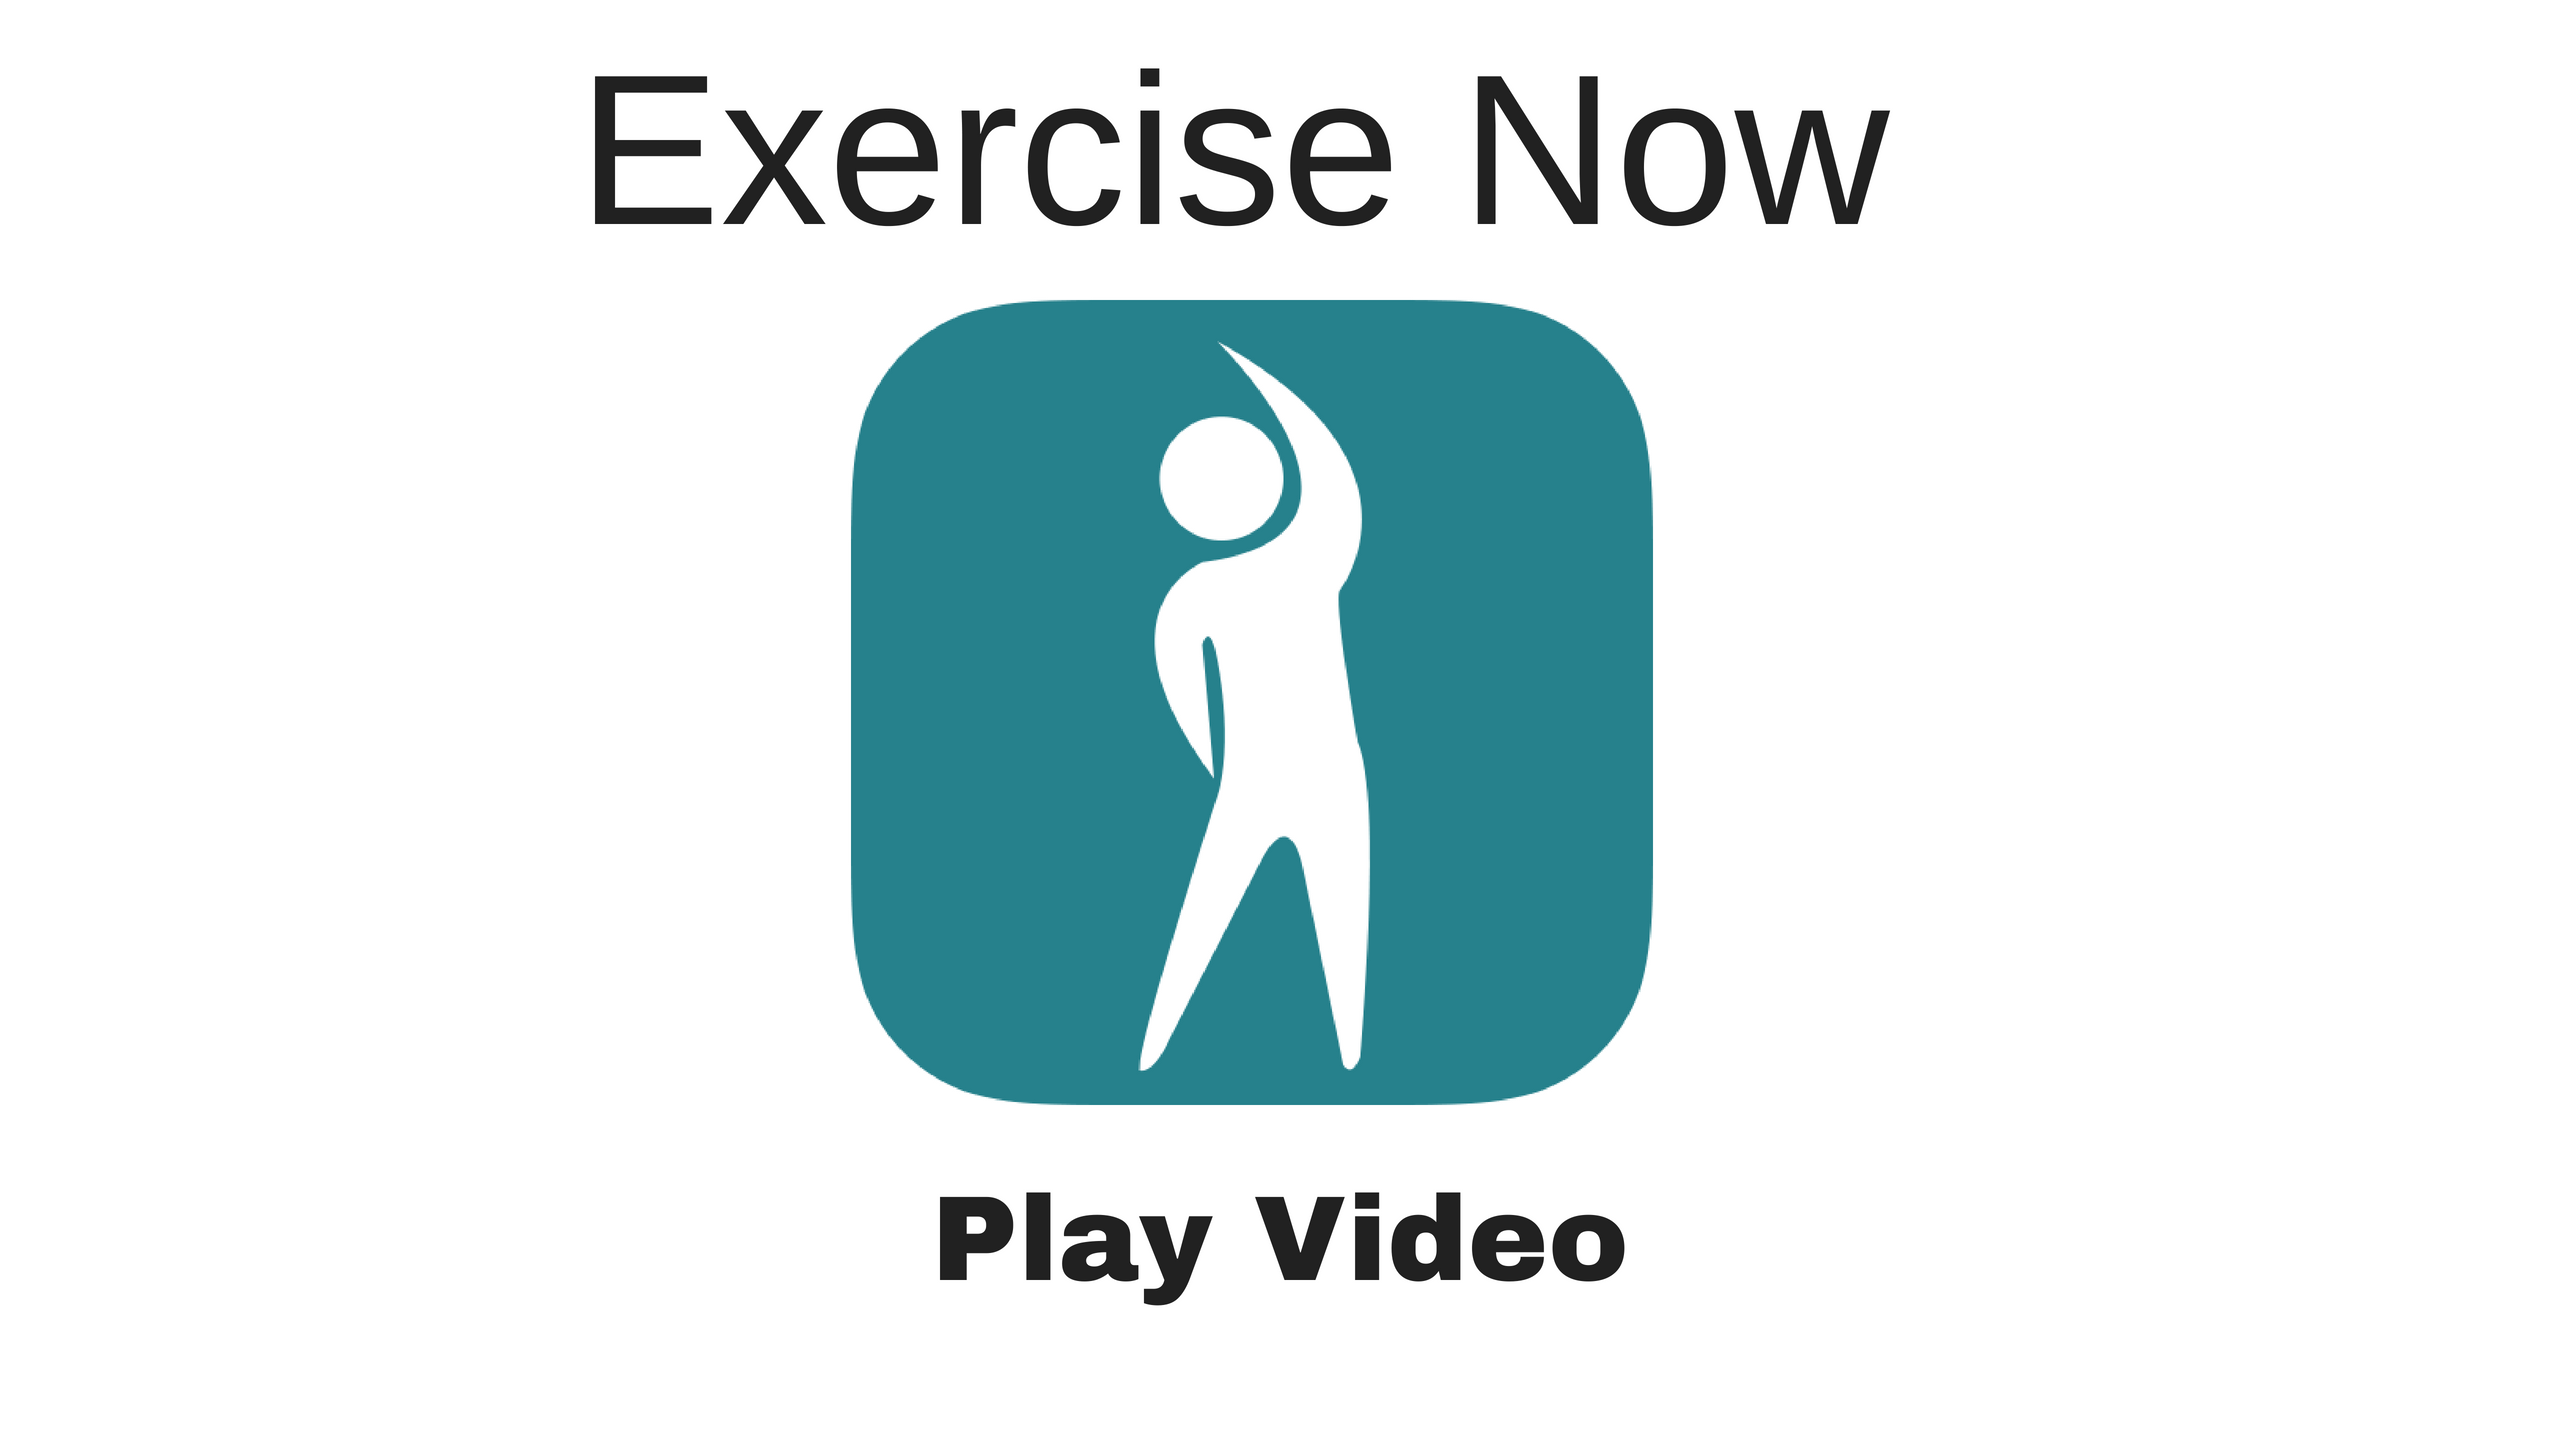 Exercise Now phone app